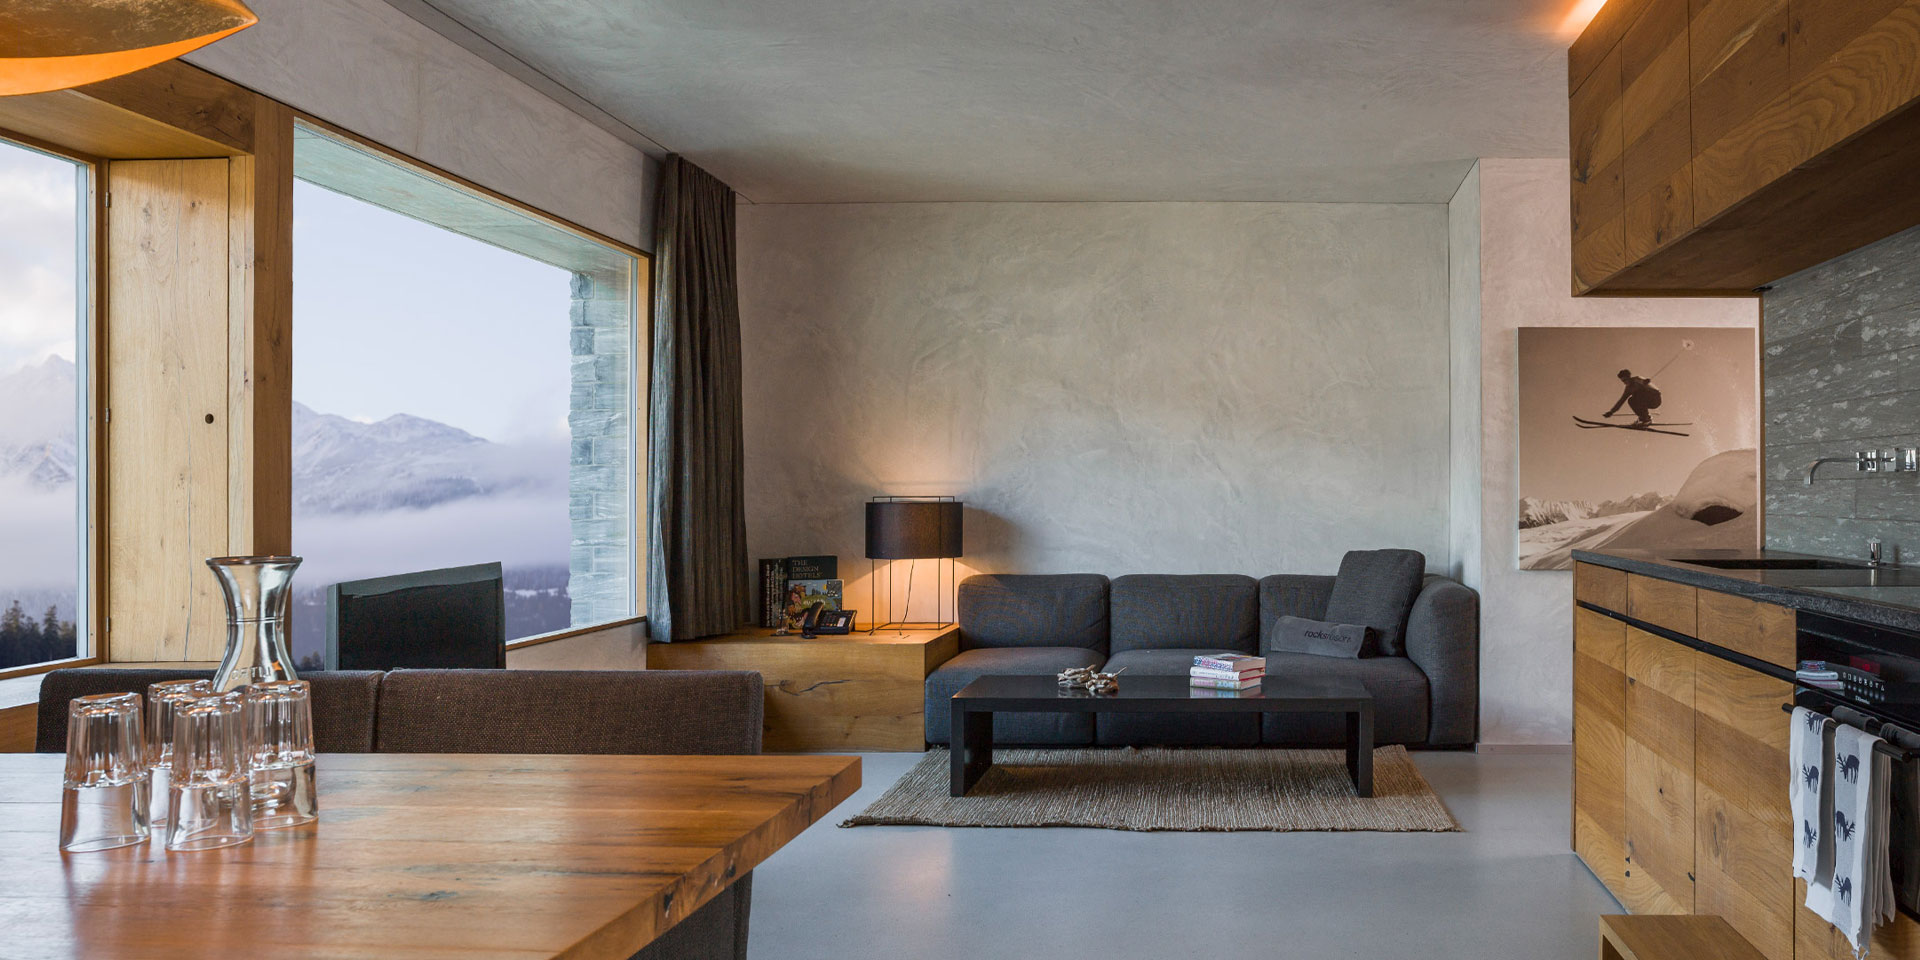 Rocksresort-Laax-Switzerland-Europe-rooms.jpg